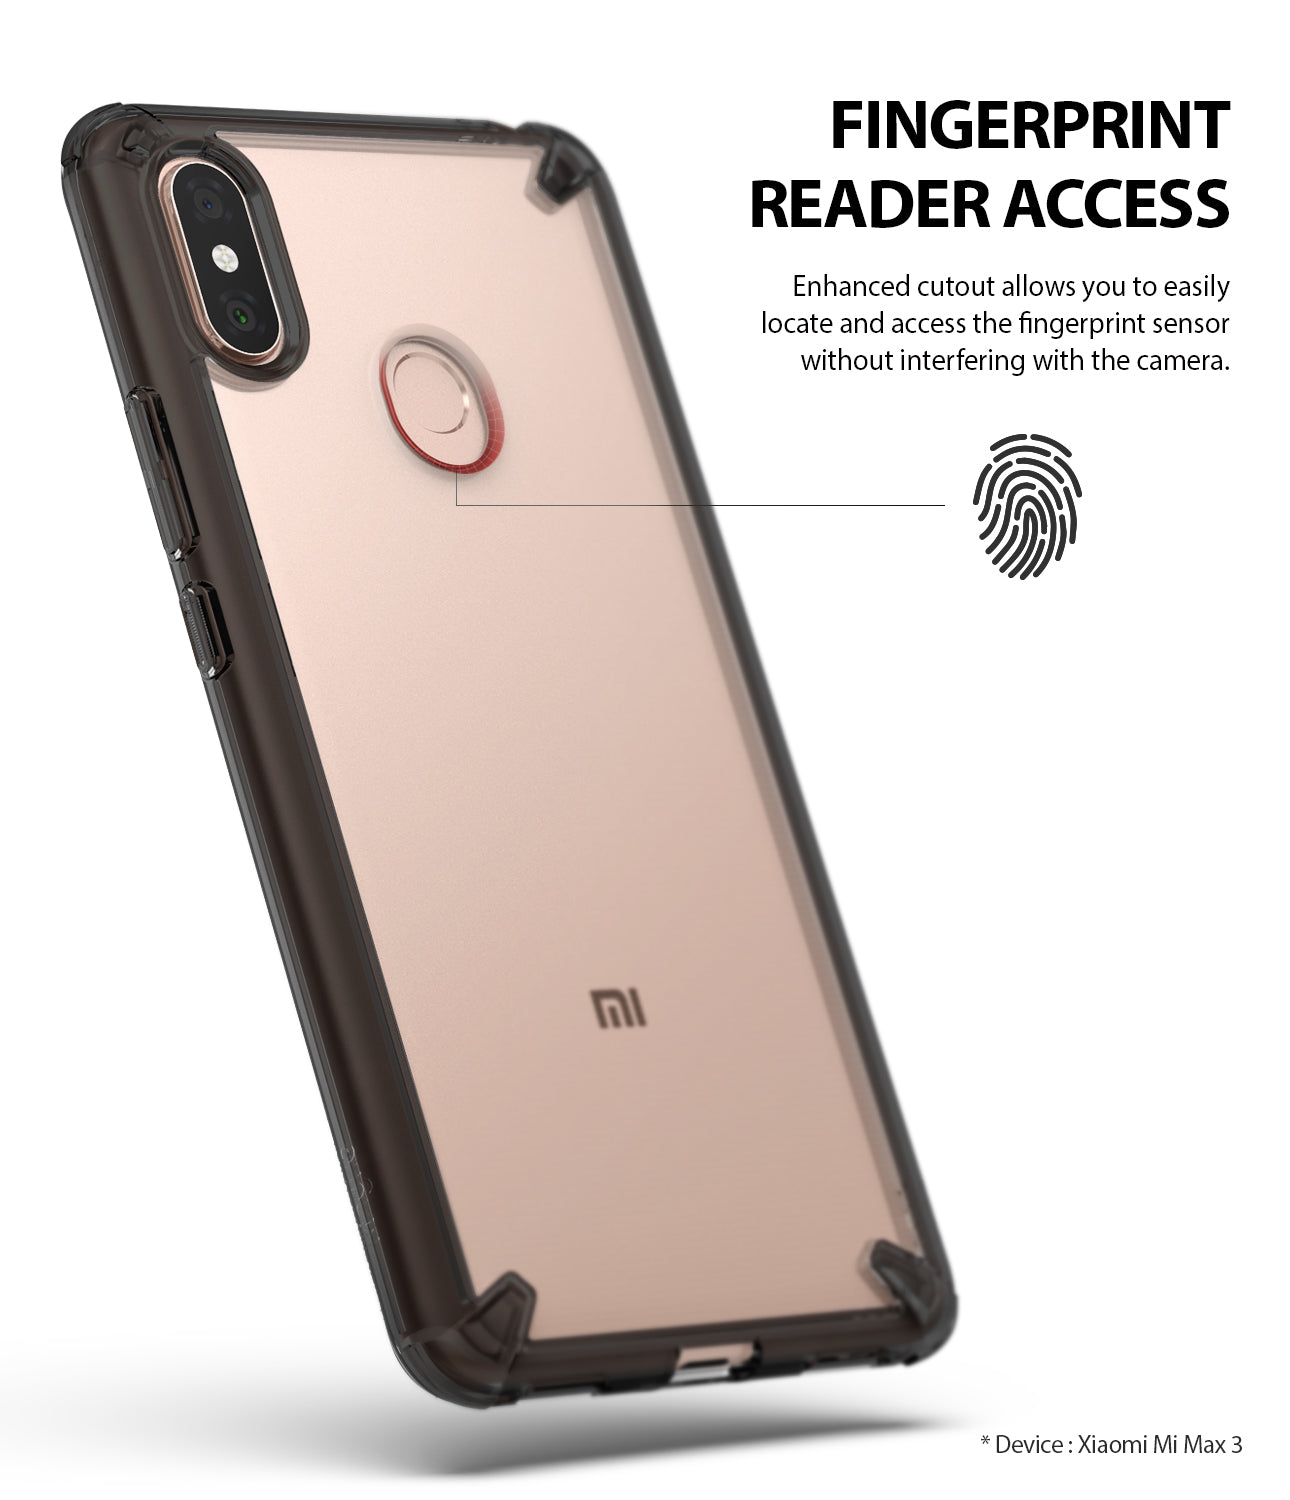 fingerprint reader access